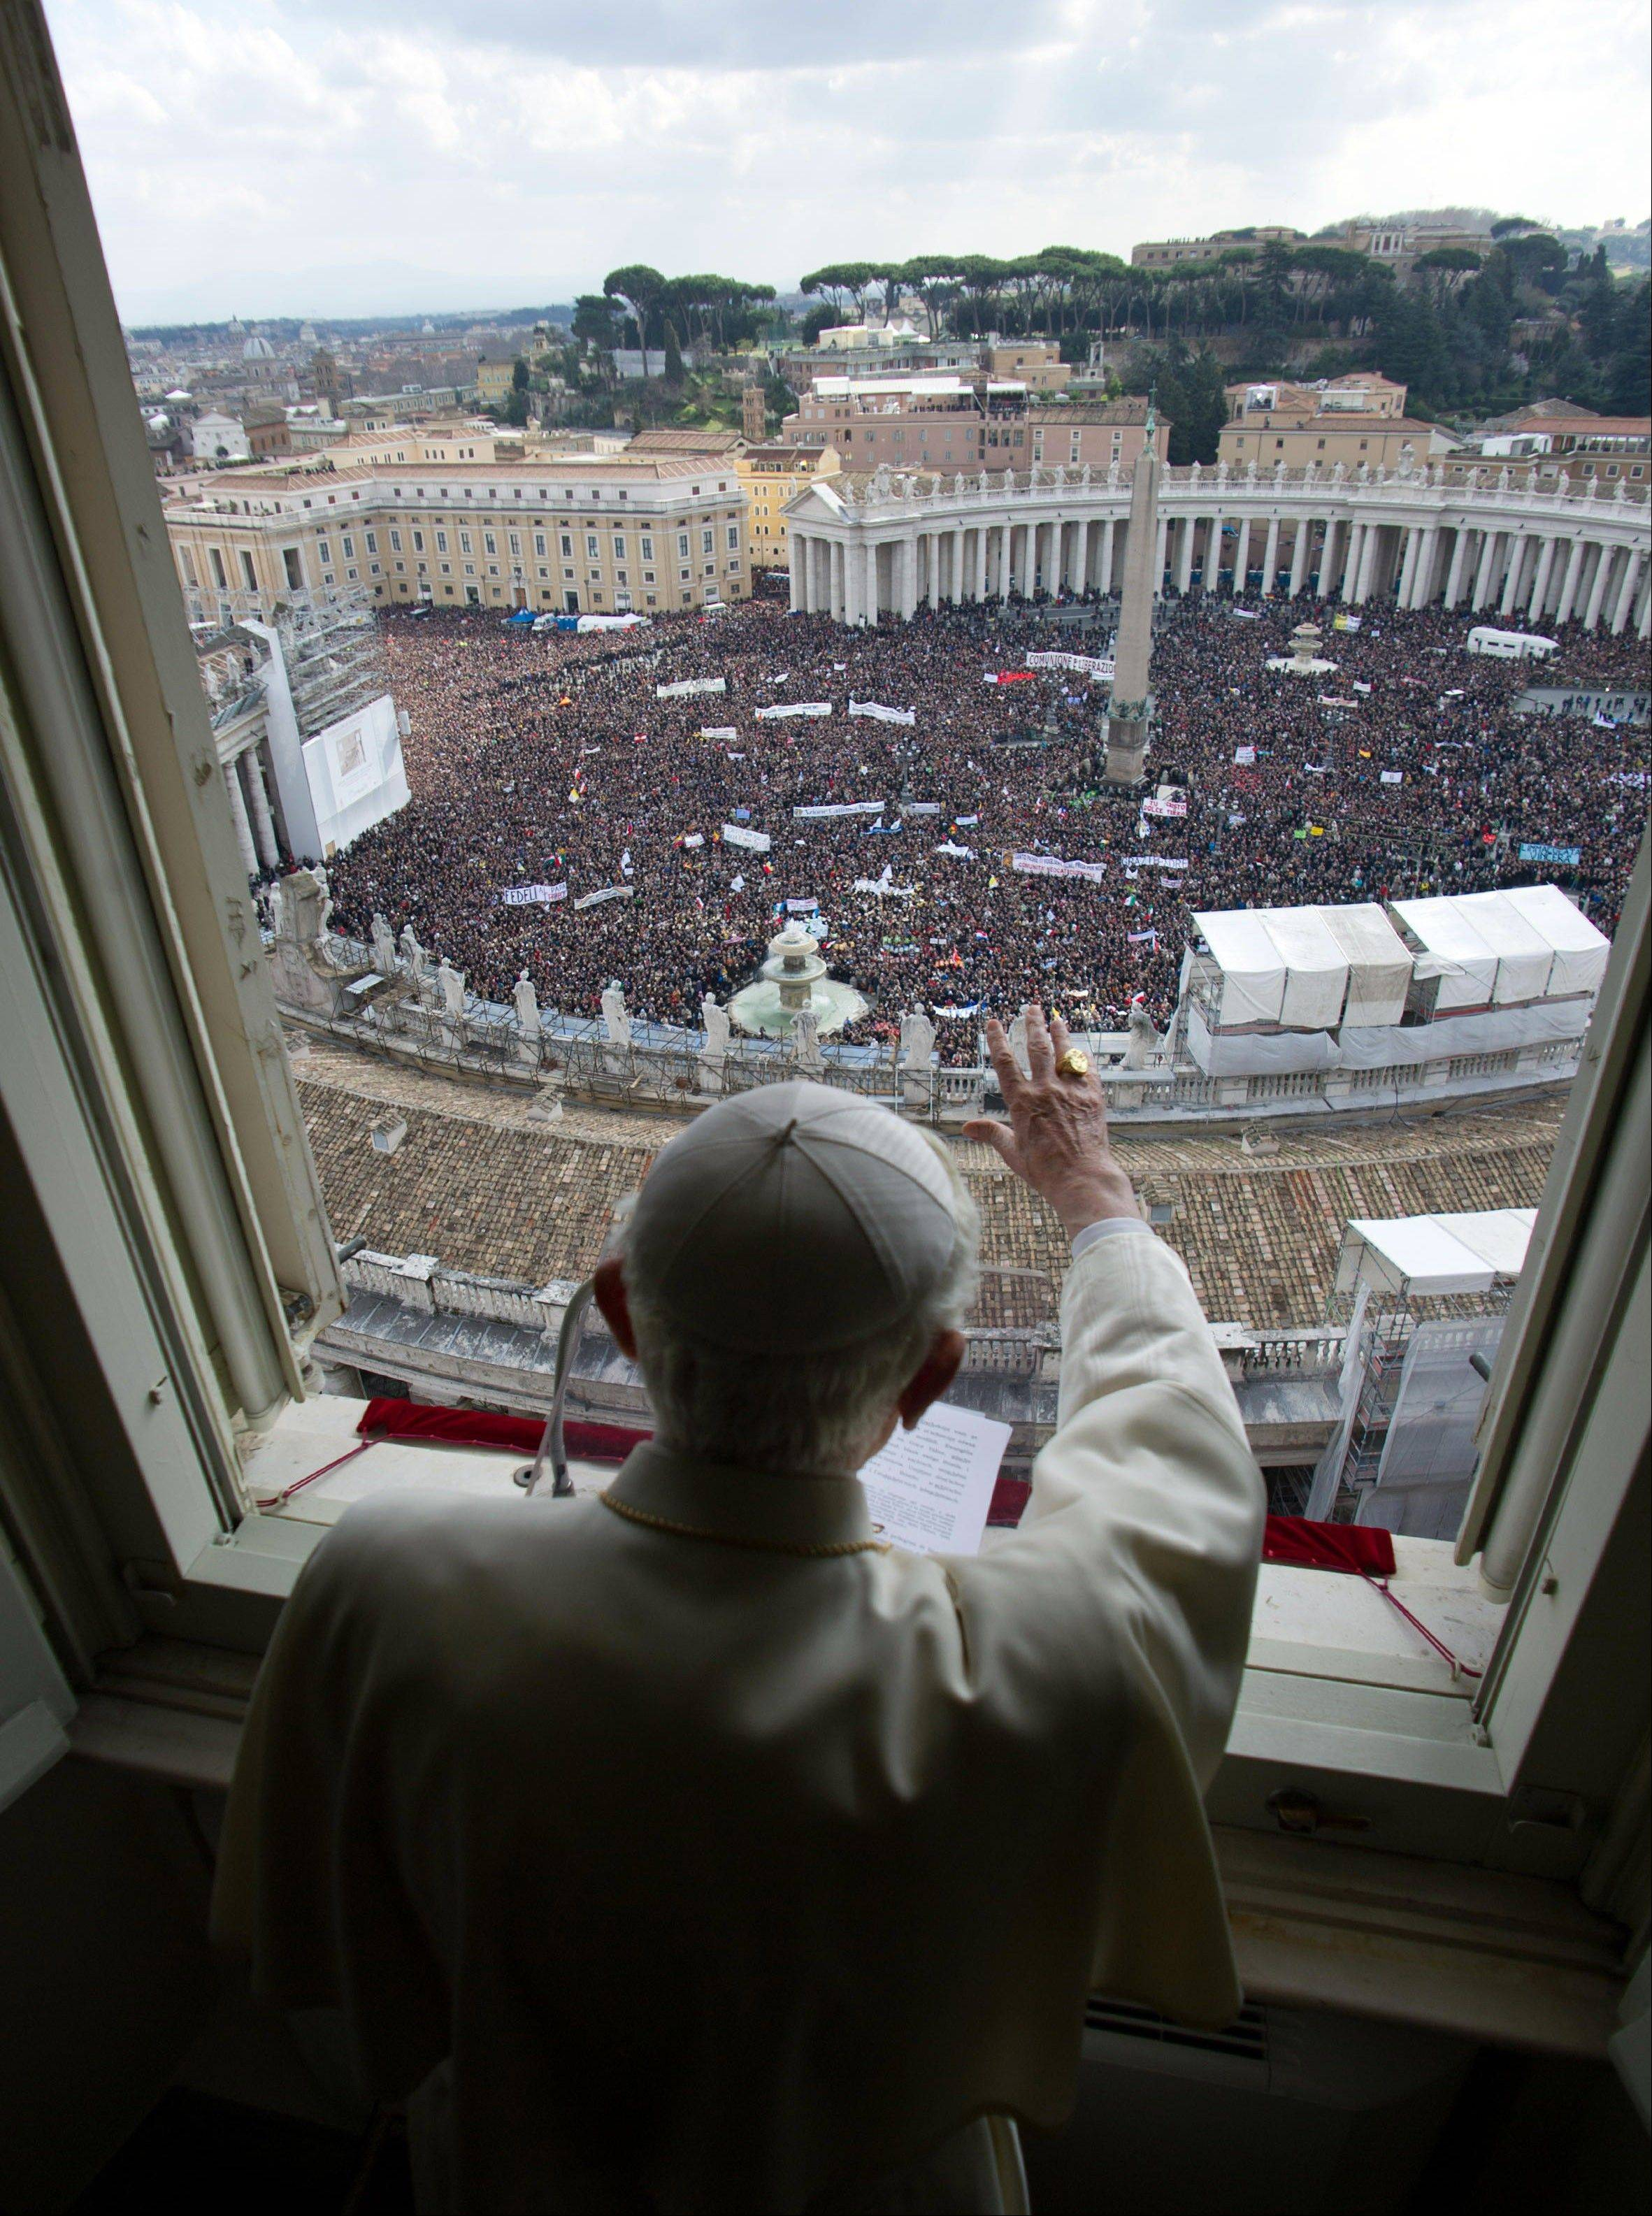 In this photo provided by the Vatican newspaper L'Osservatore Romano, Pope Benedict XVI delivers his blessing during his last Angelus noon prayer, from the window of his studio overlooking St. Peter's Square, at the Vatican, Sunday. Benedict XVI gave his pontificate's final Sunday blessing from his studio window to the cheers of tens of thousands of people packing St. Peter's Square.